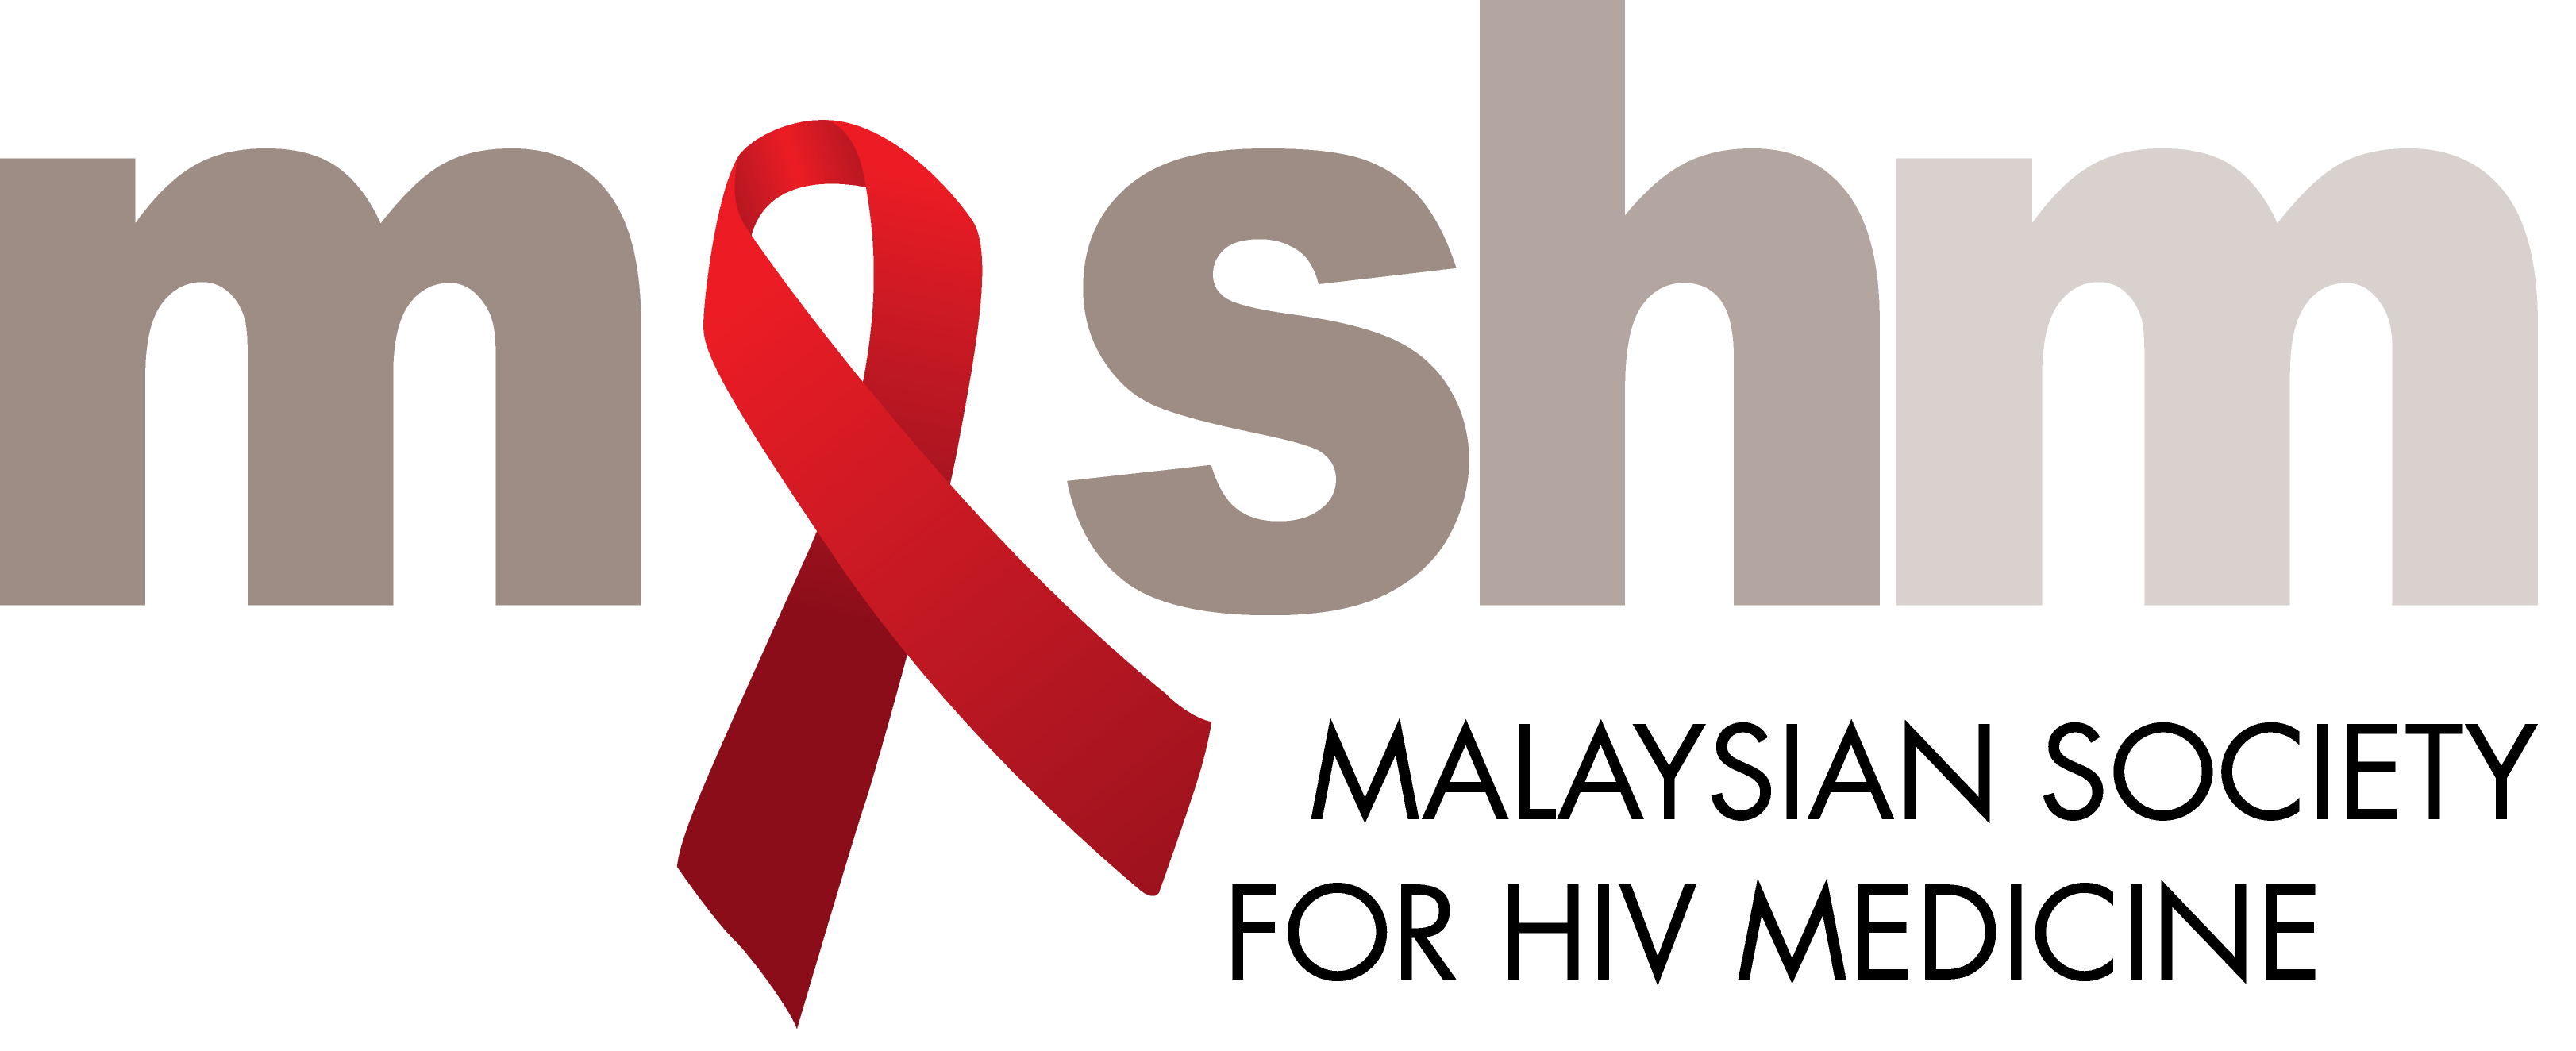 The Malaysian Society for HIV Medicine